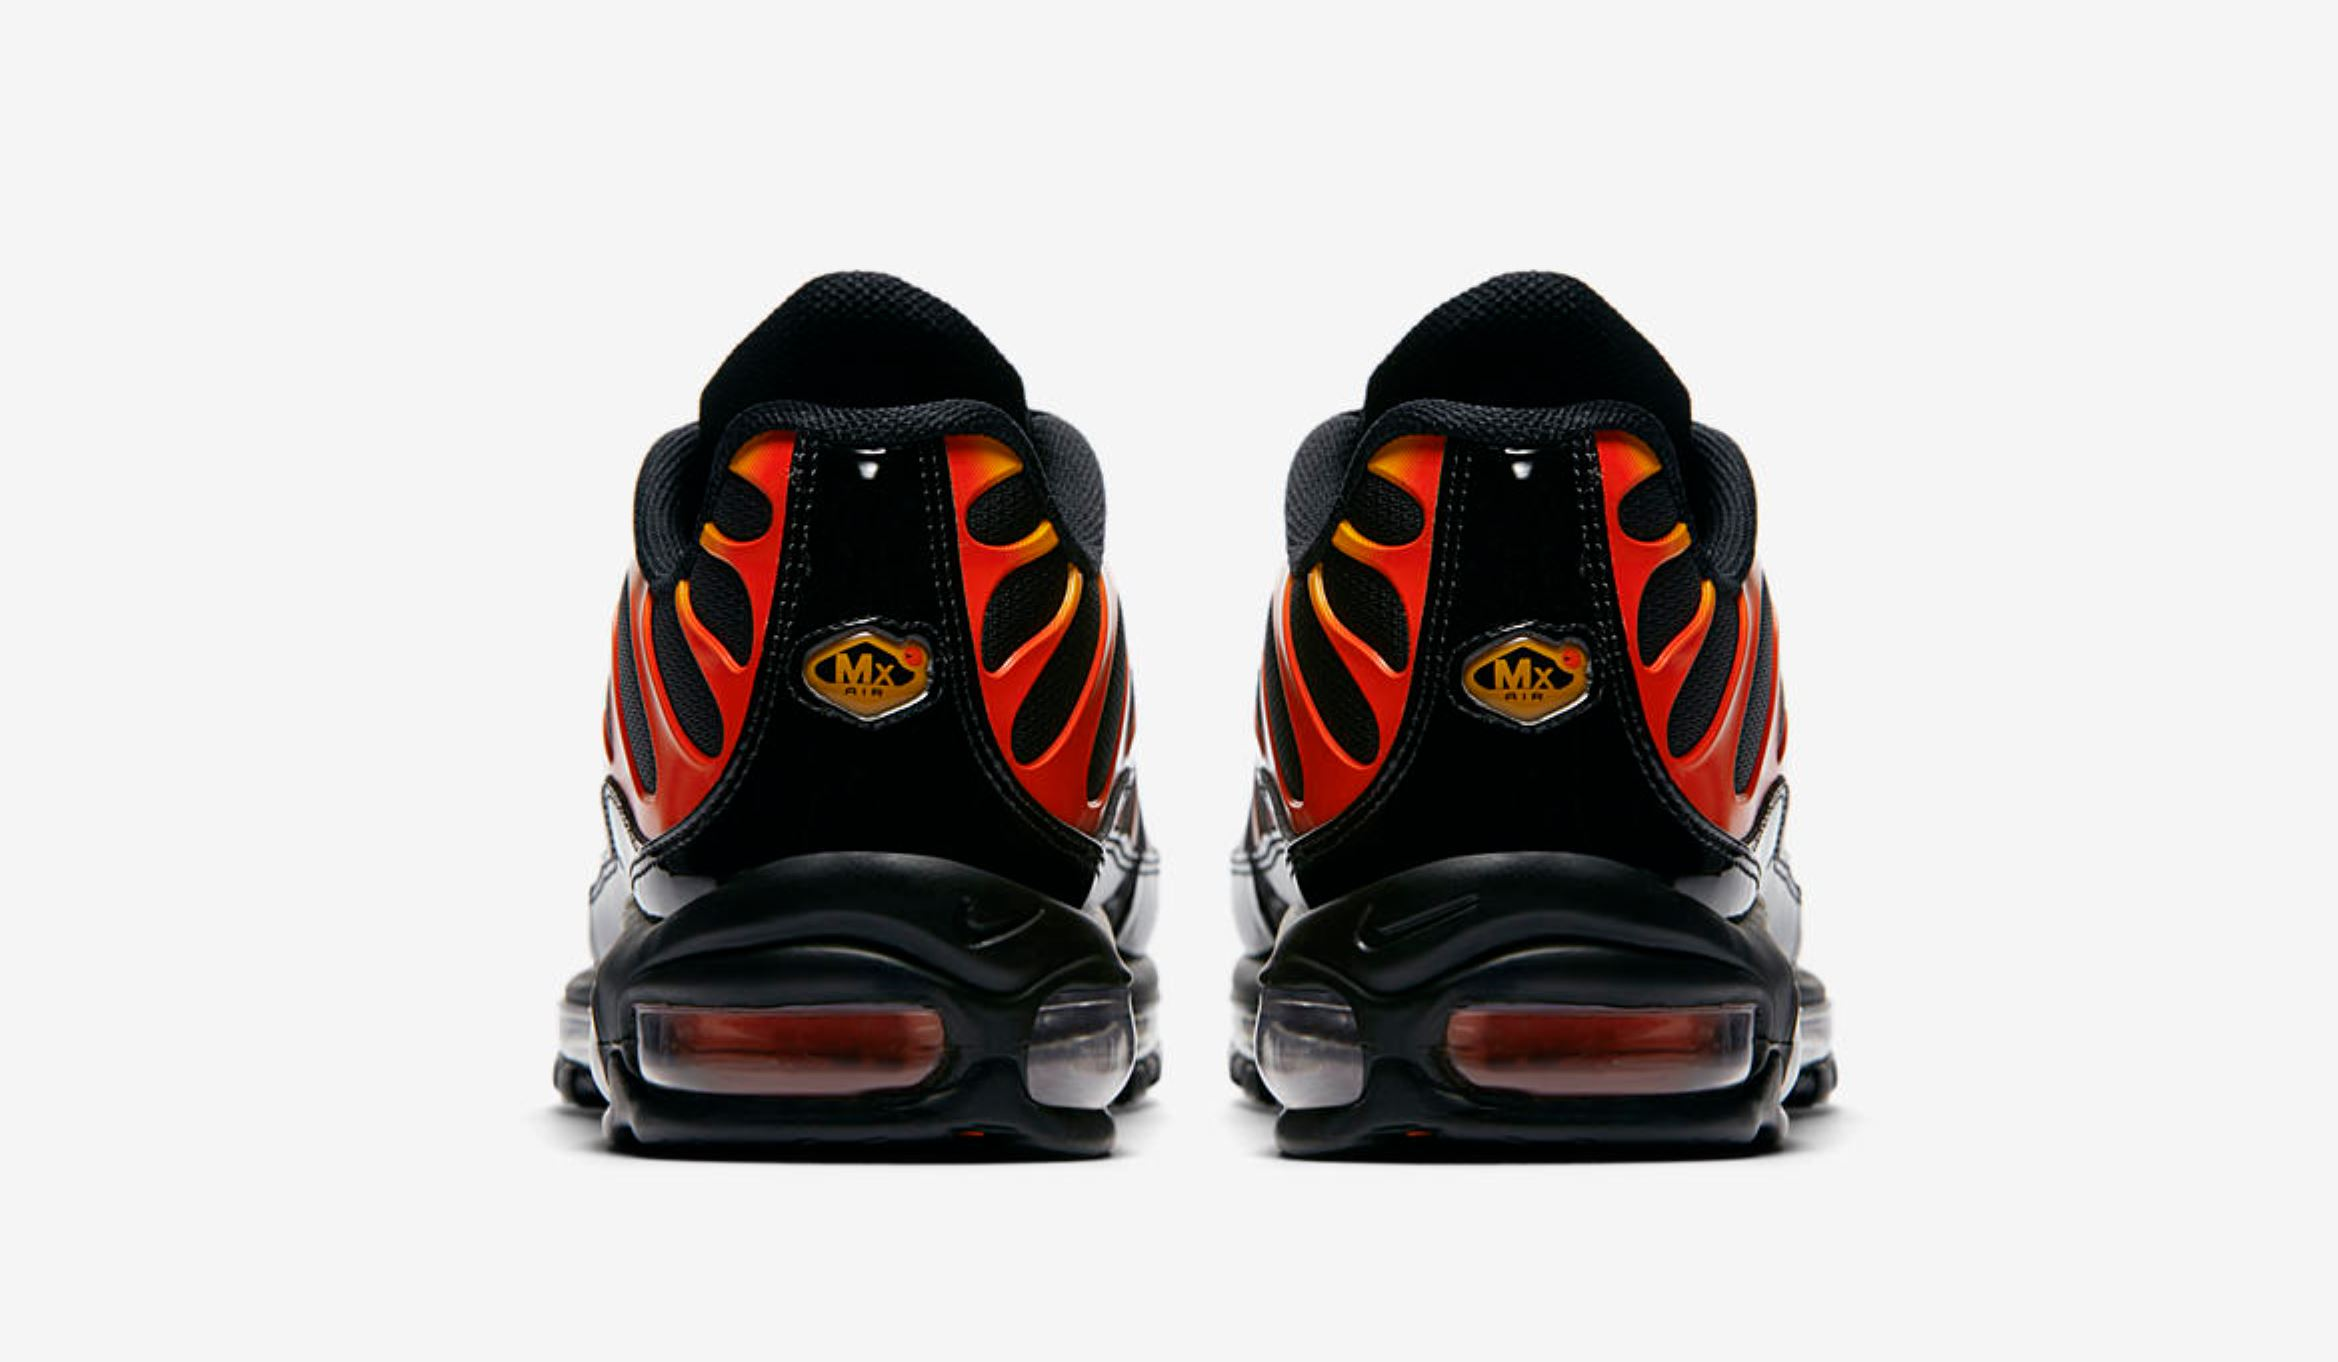 Flame On With The Nike Air Max Plus 97 Shock Orange Weartesters